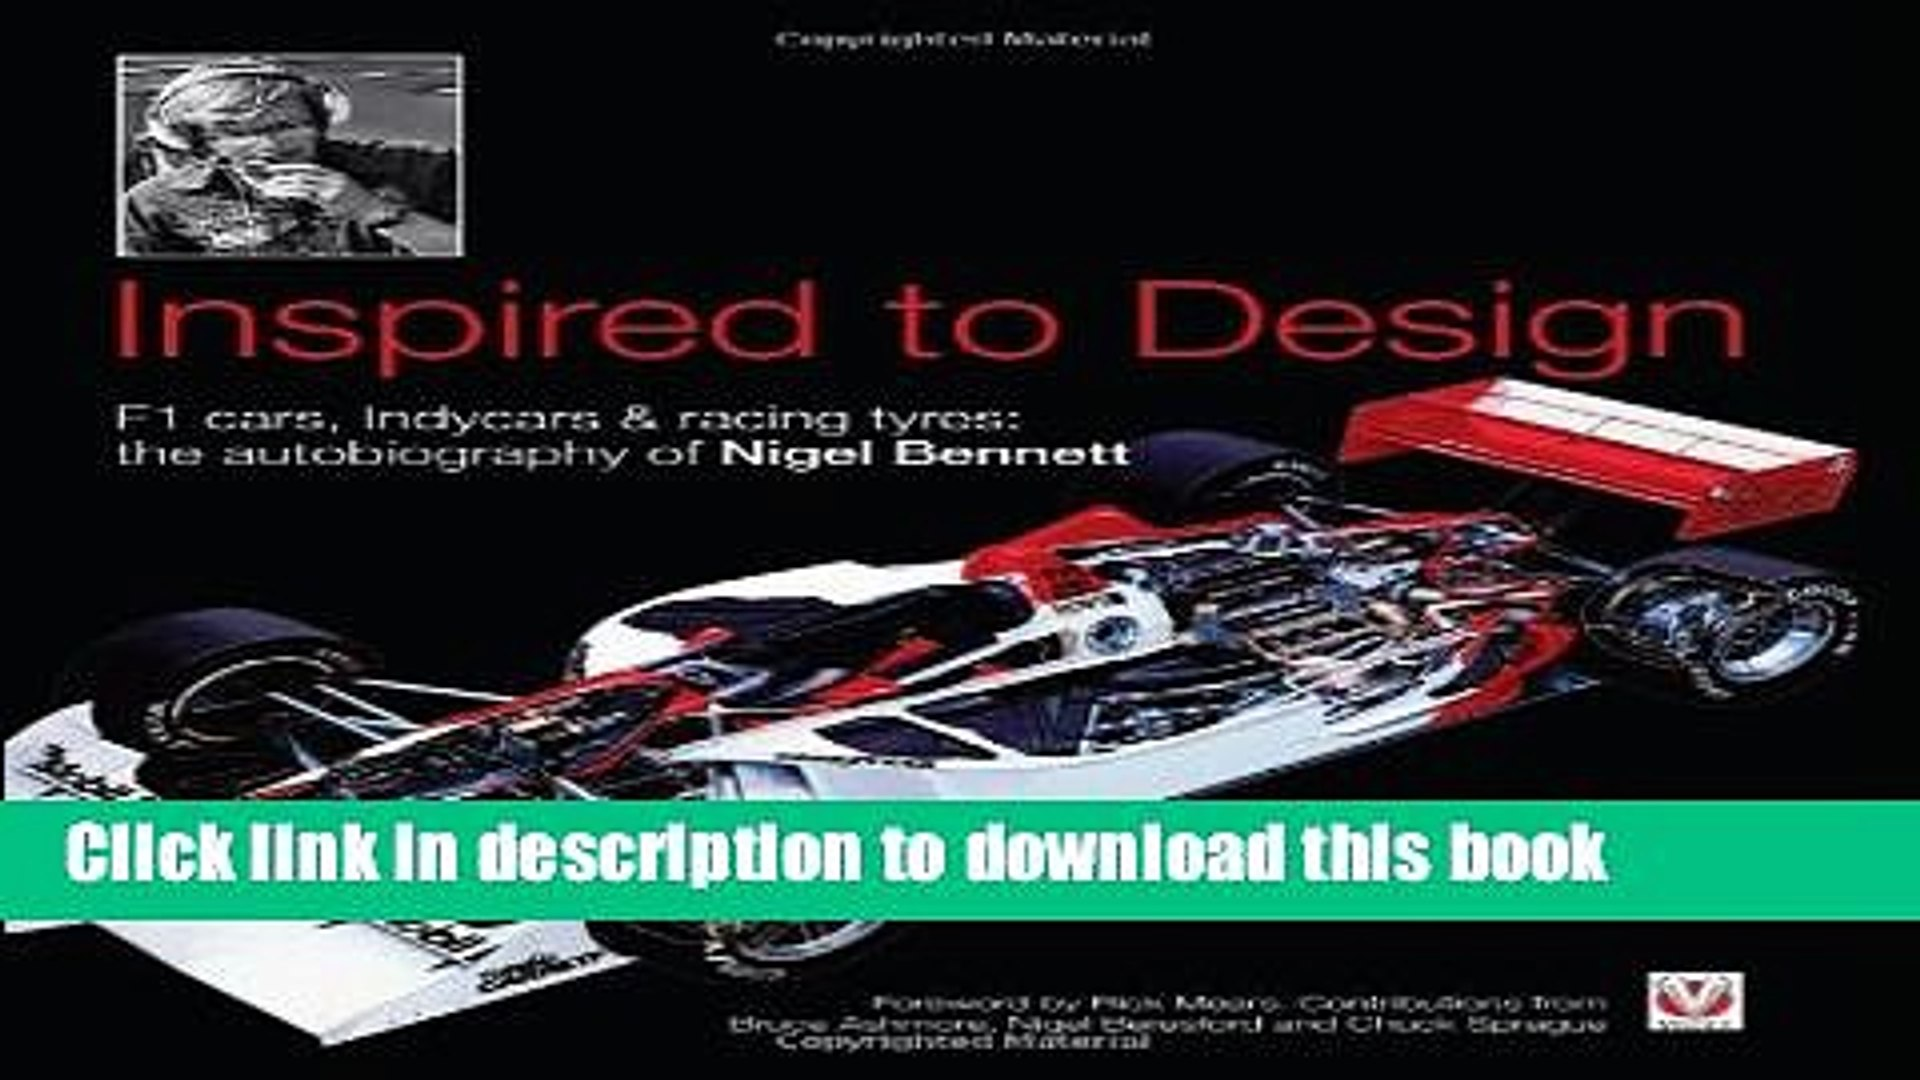 Indycars /& Racing Tyres Autobiography Nigel Bennett Inspired to Design F1 Cars